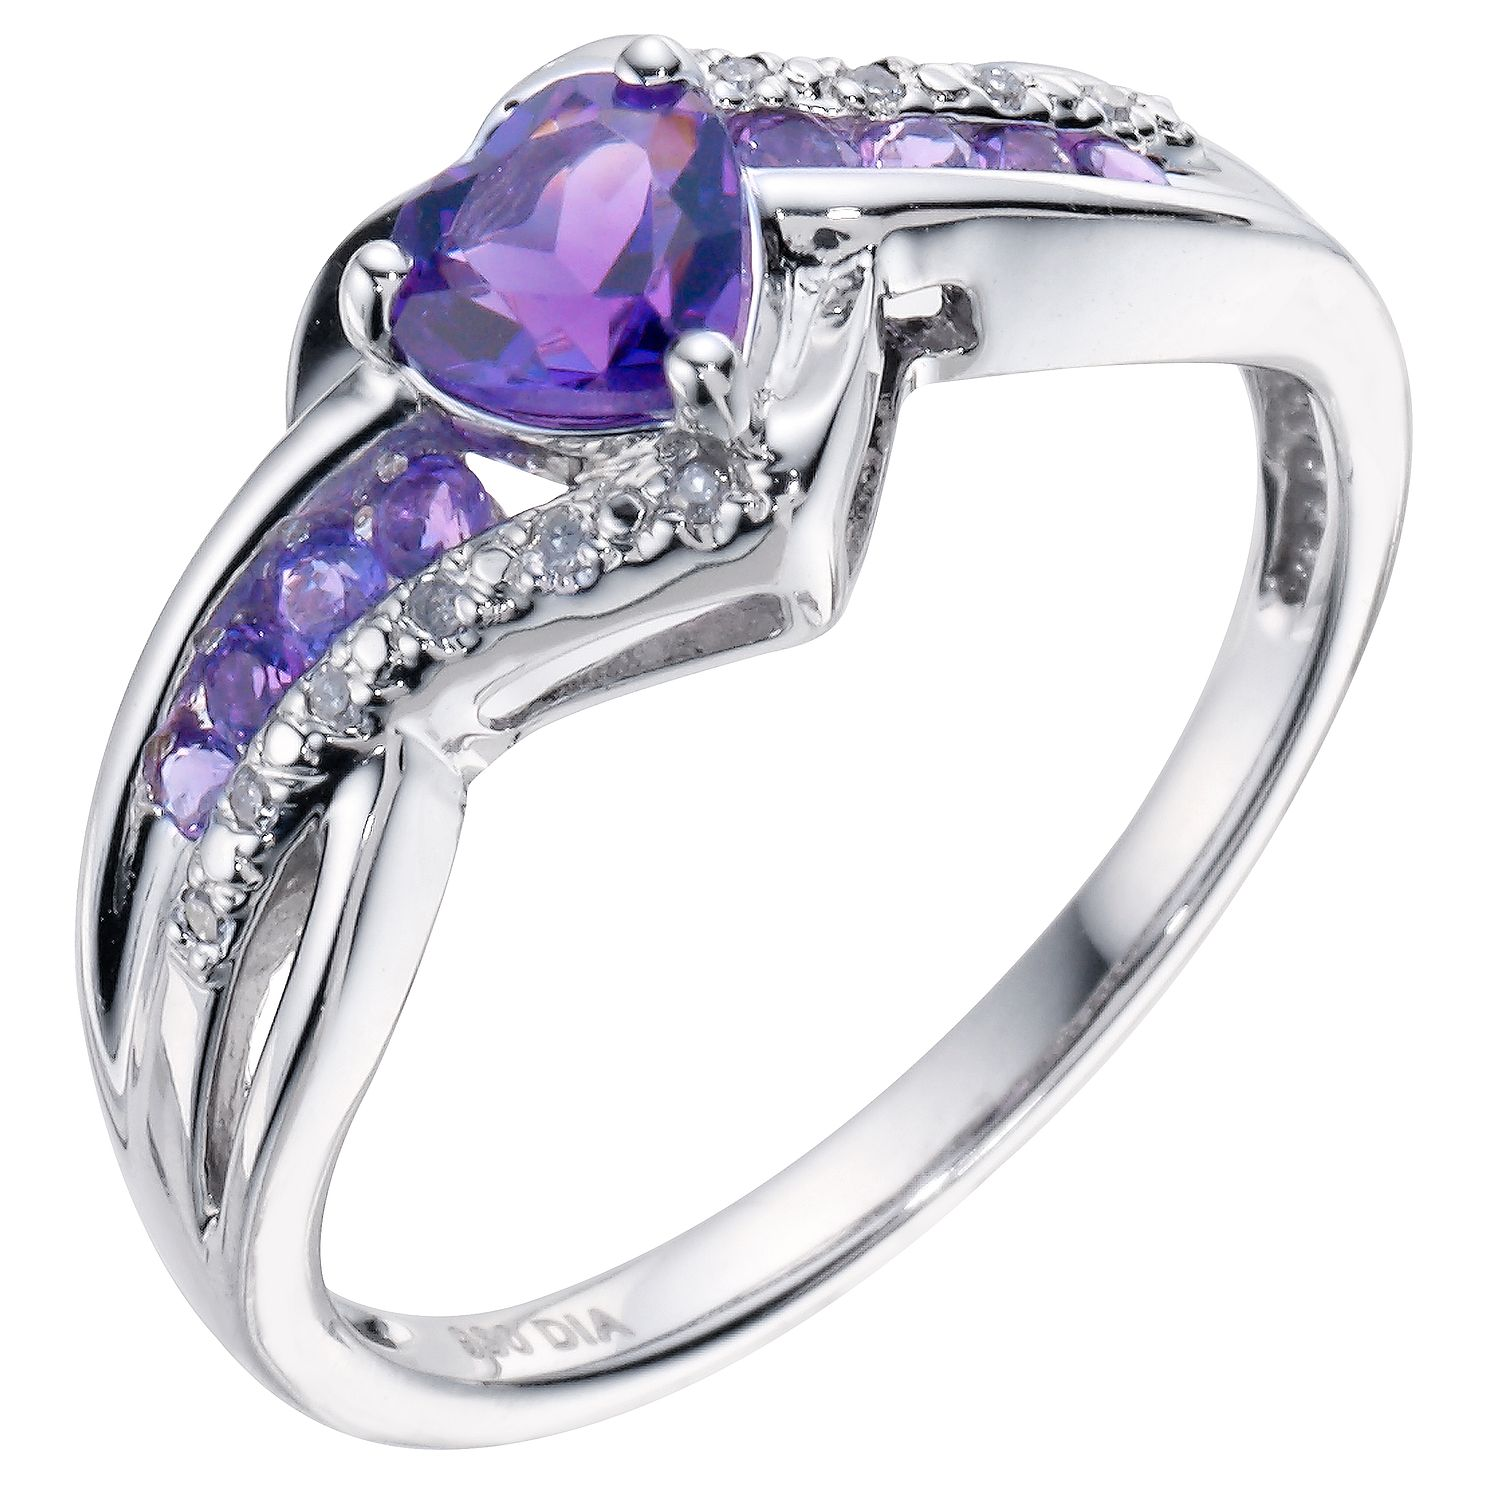 setting amethyst recently gemstone rings ring in cushion purple engagement customized with swirl purchased diamond style platinum